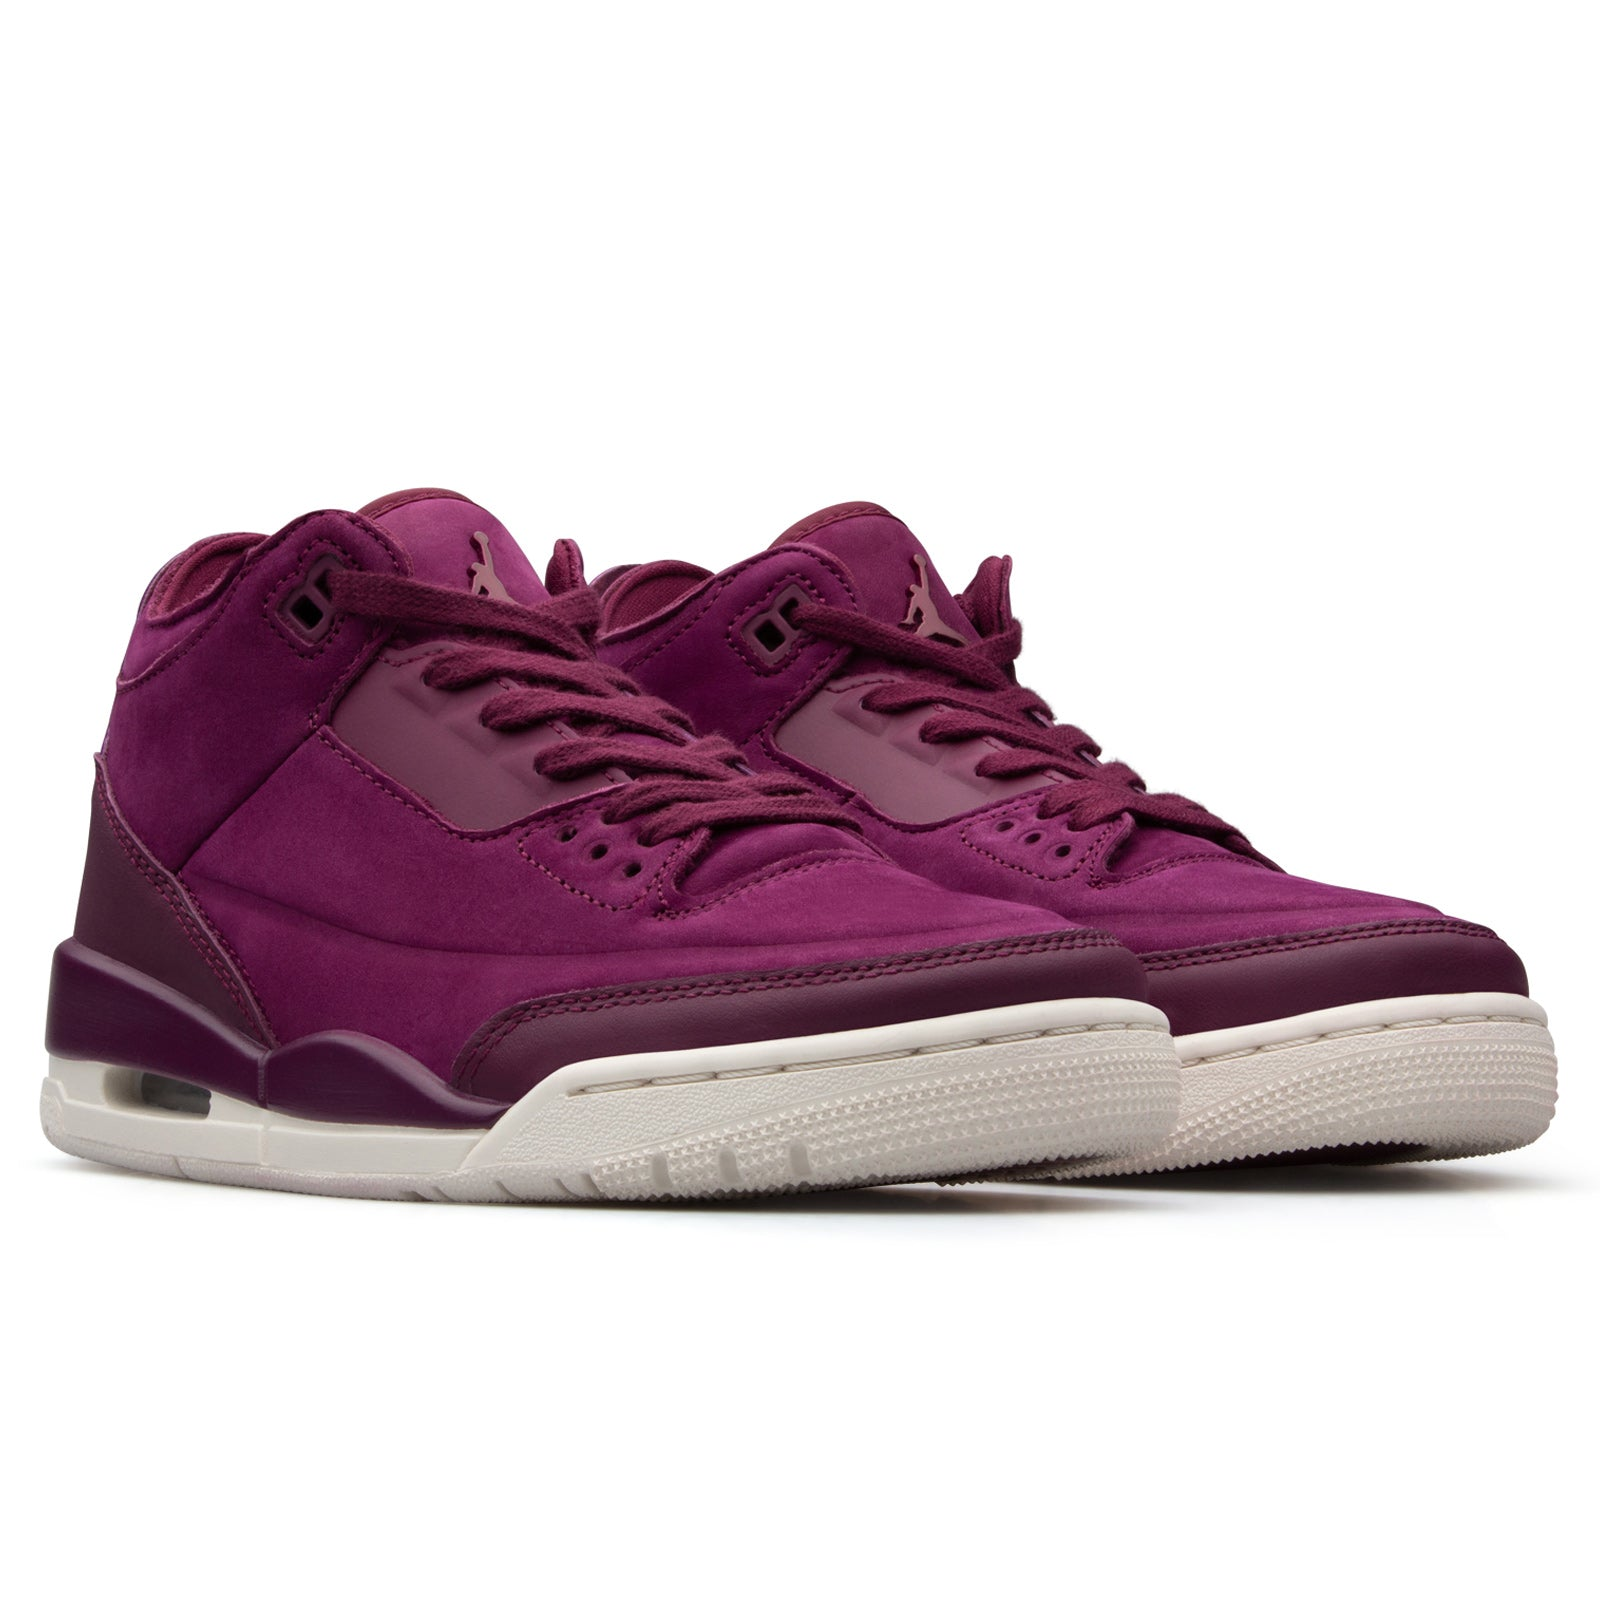 new style 7f4b8 5c558 He took the court in 1985 wearing the original Air Jordan I, simultaneously  breaking league rules and his opponents  will while capturing the  imagination of ...